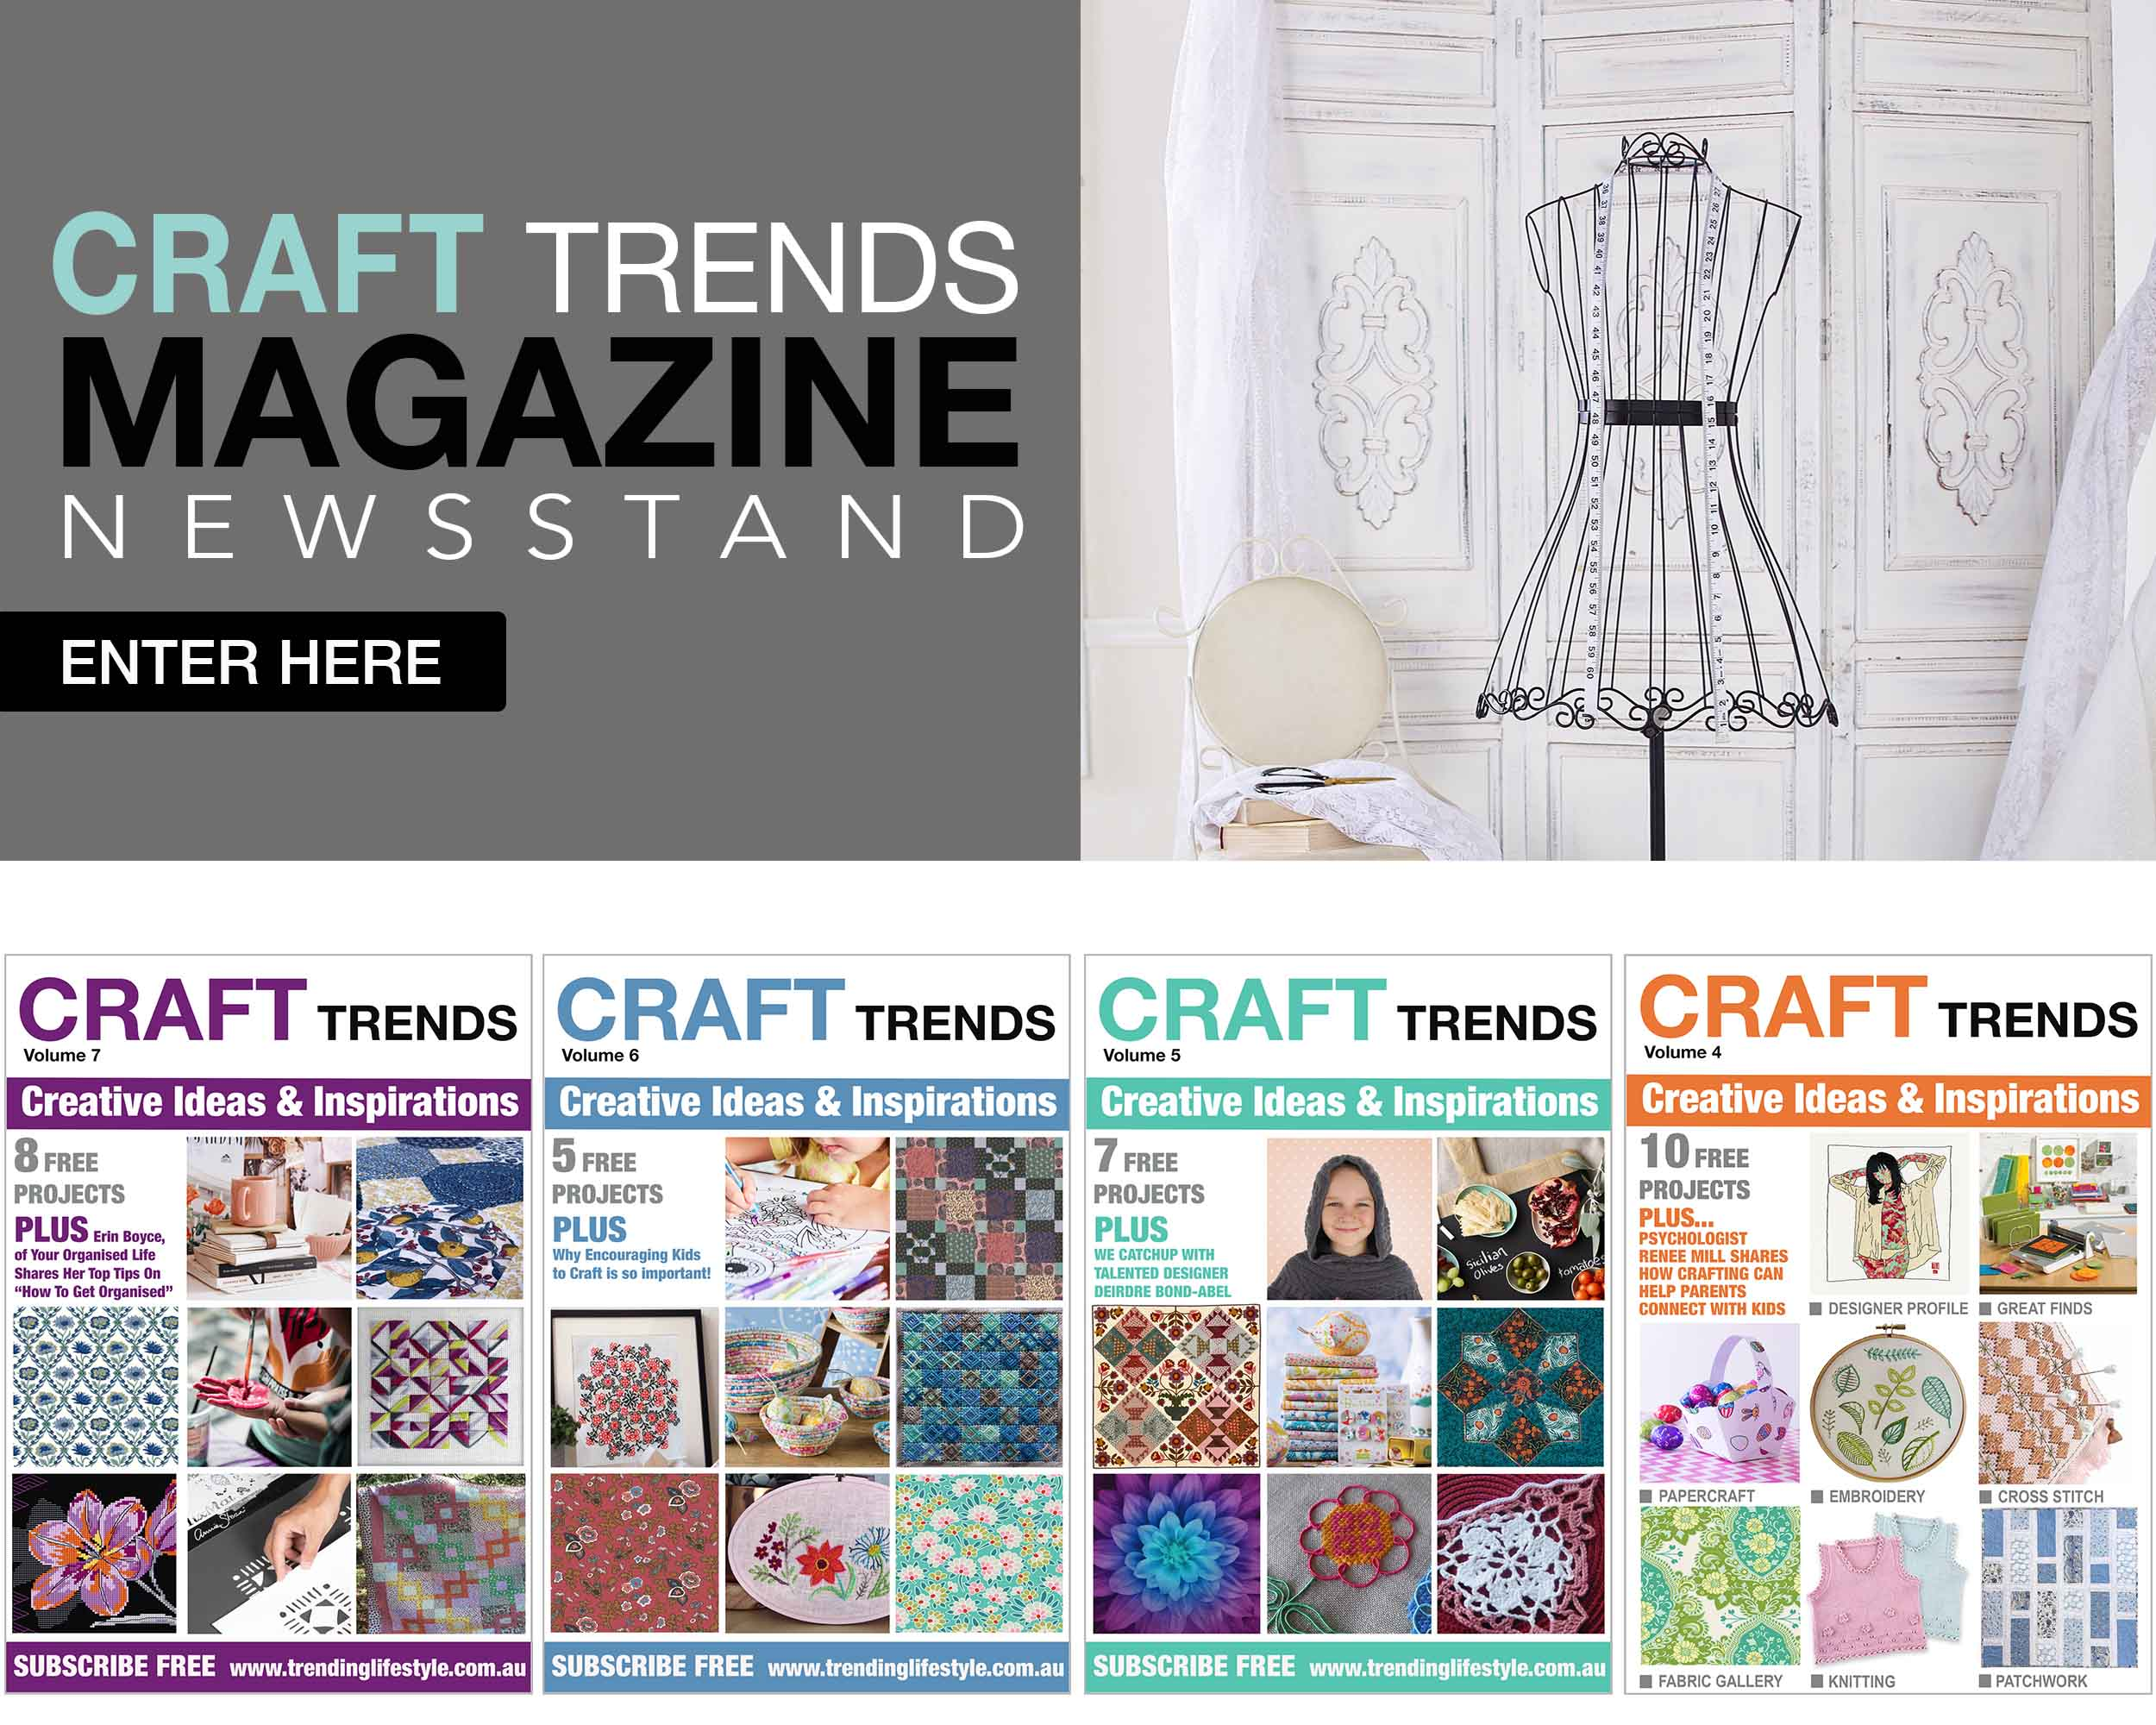 Craft Trends Newsstand